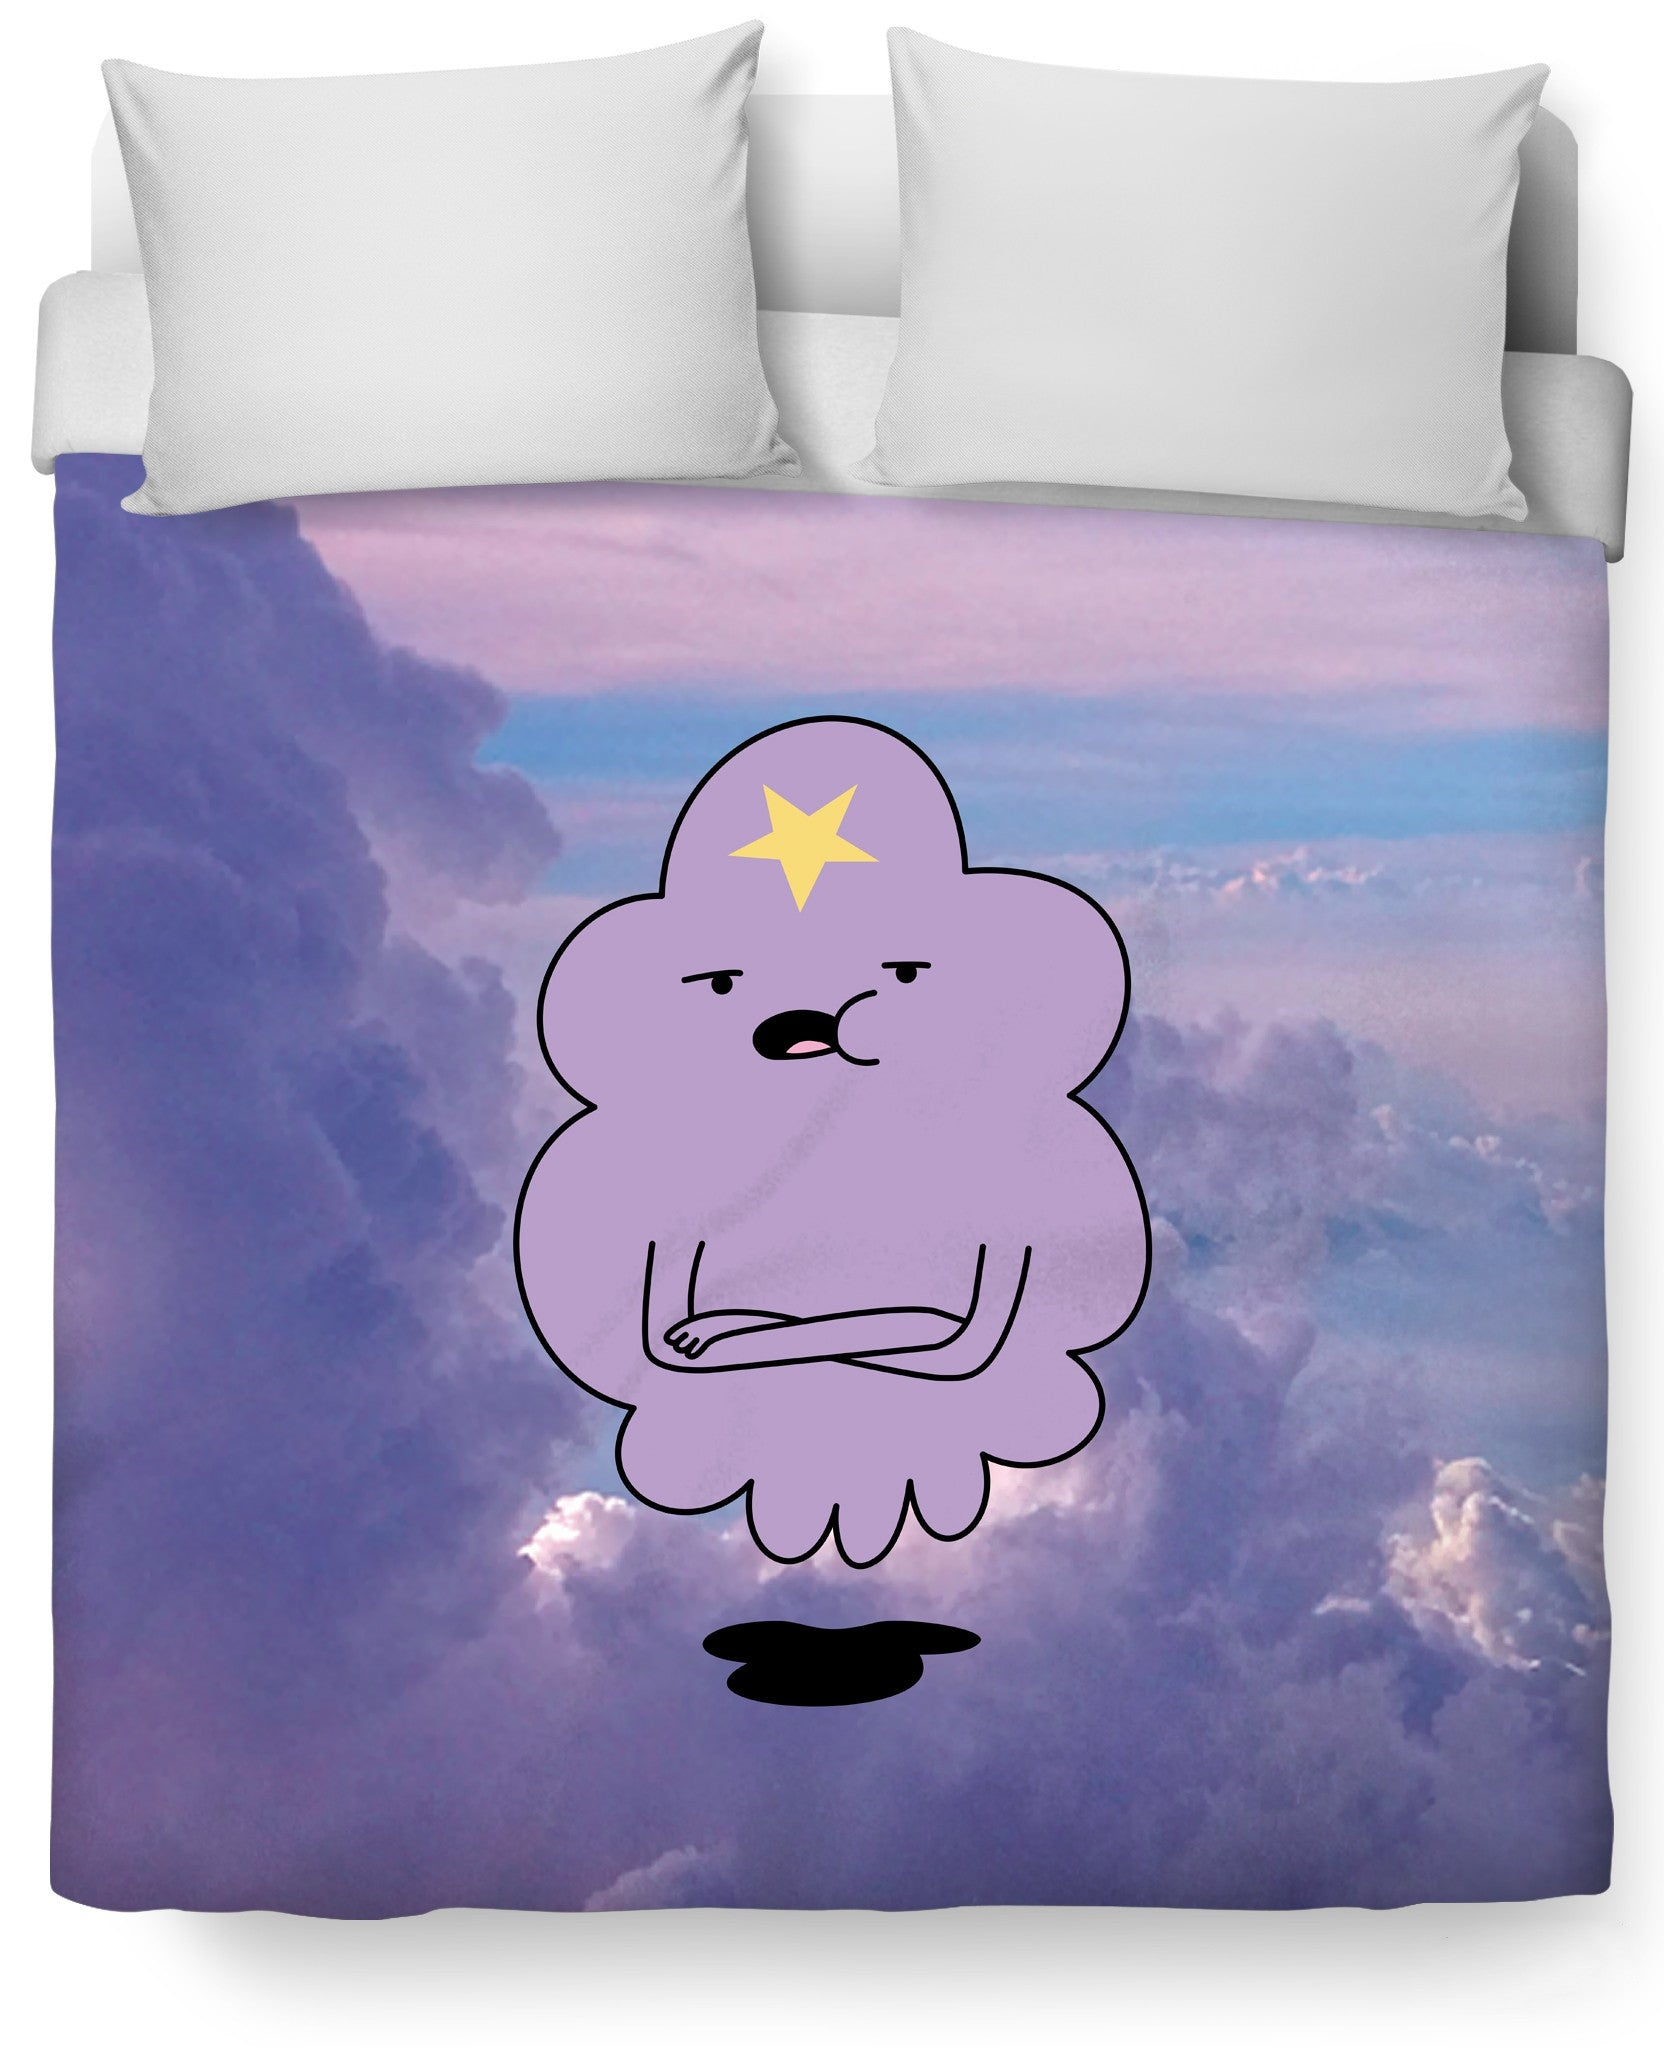 Lumpy Space Princess Duvet Cover